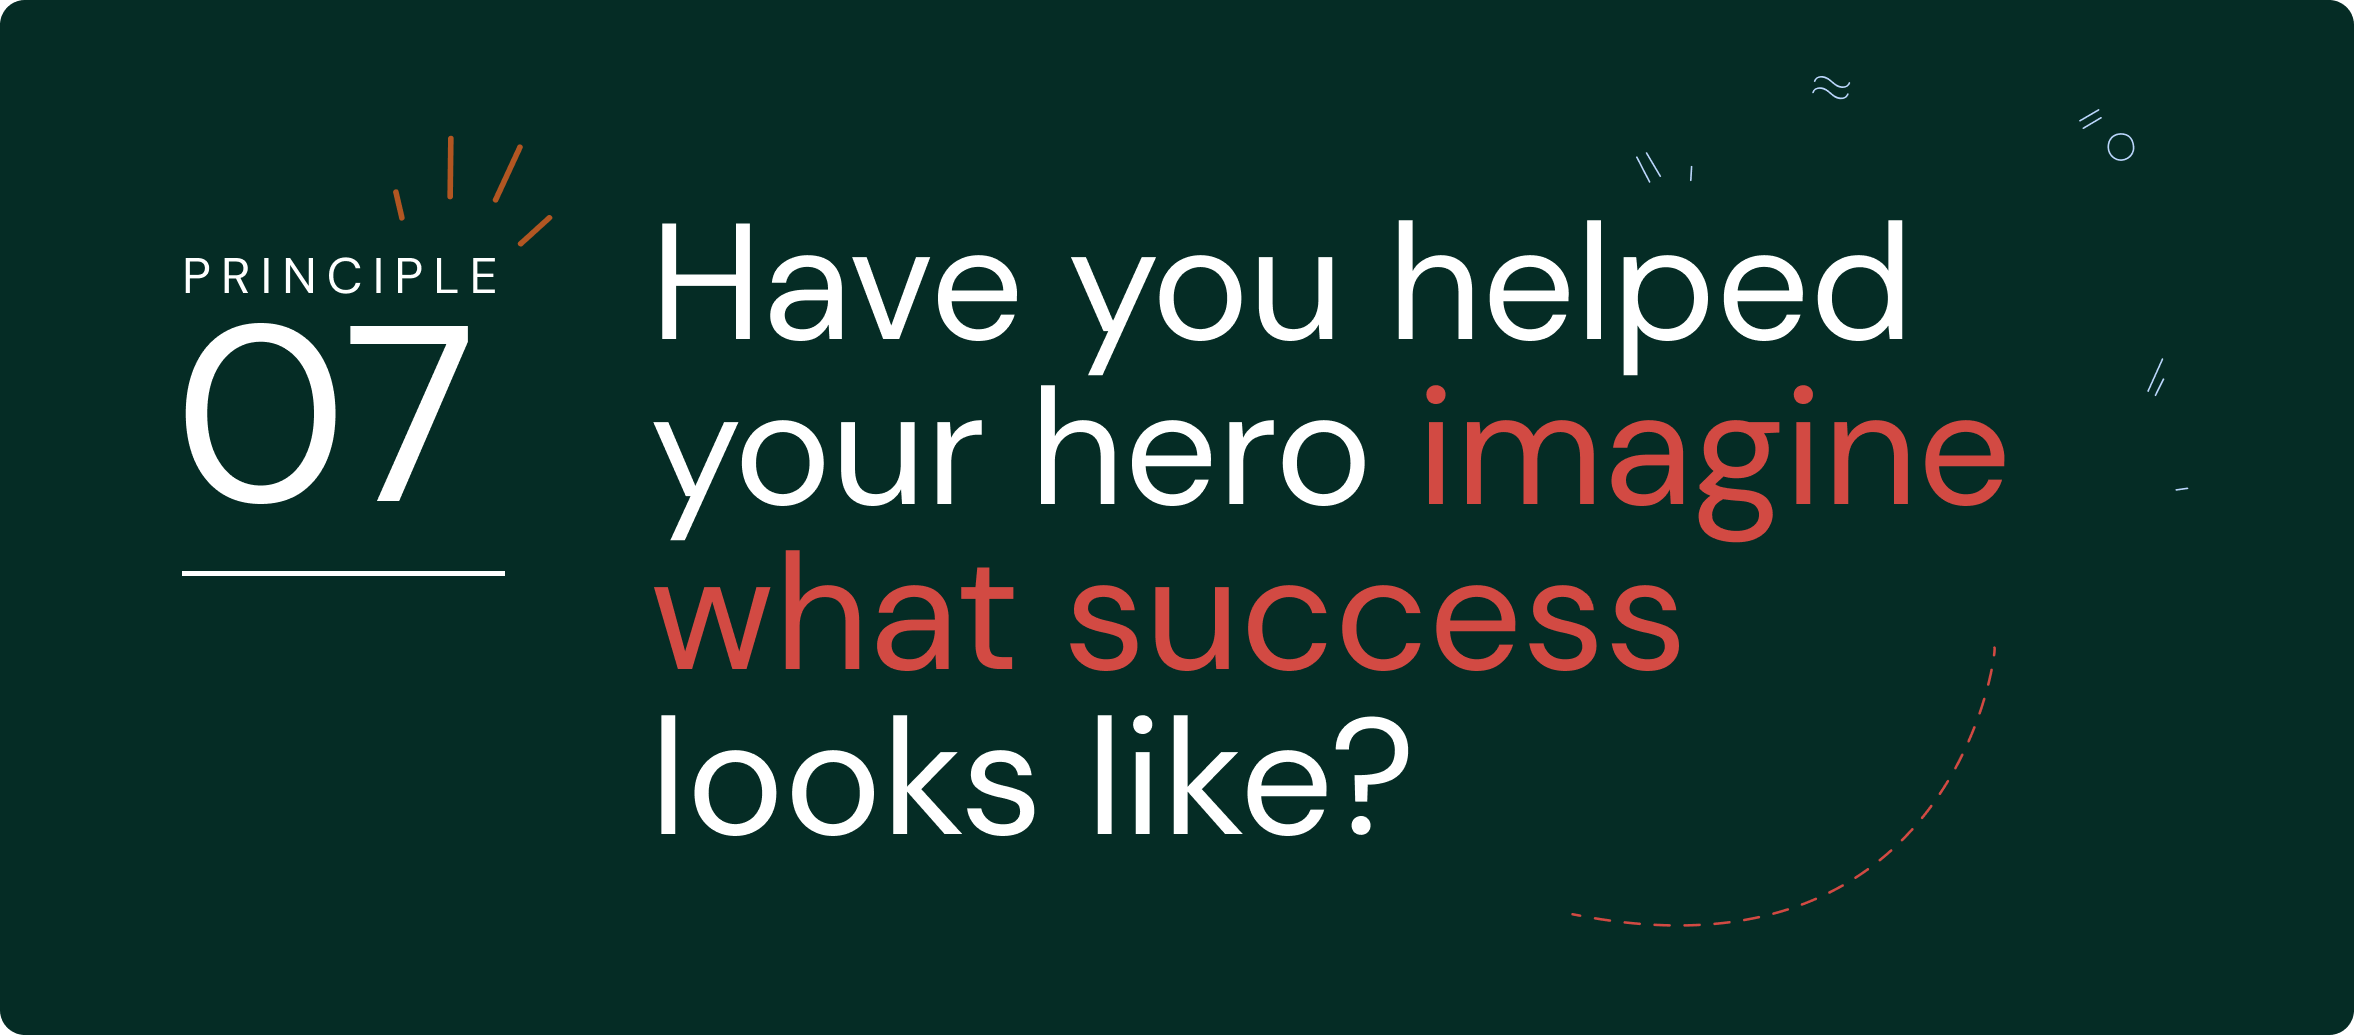 Have you helped your hero imagine what success looks like?